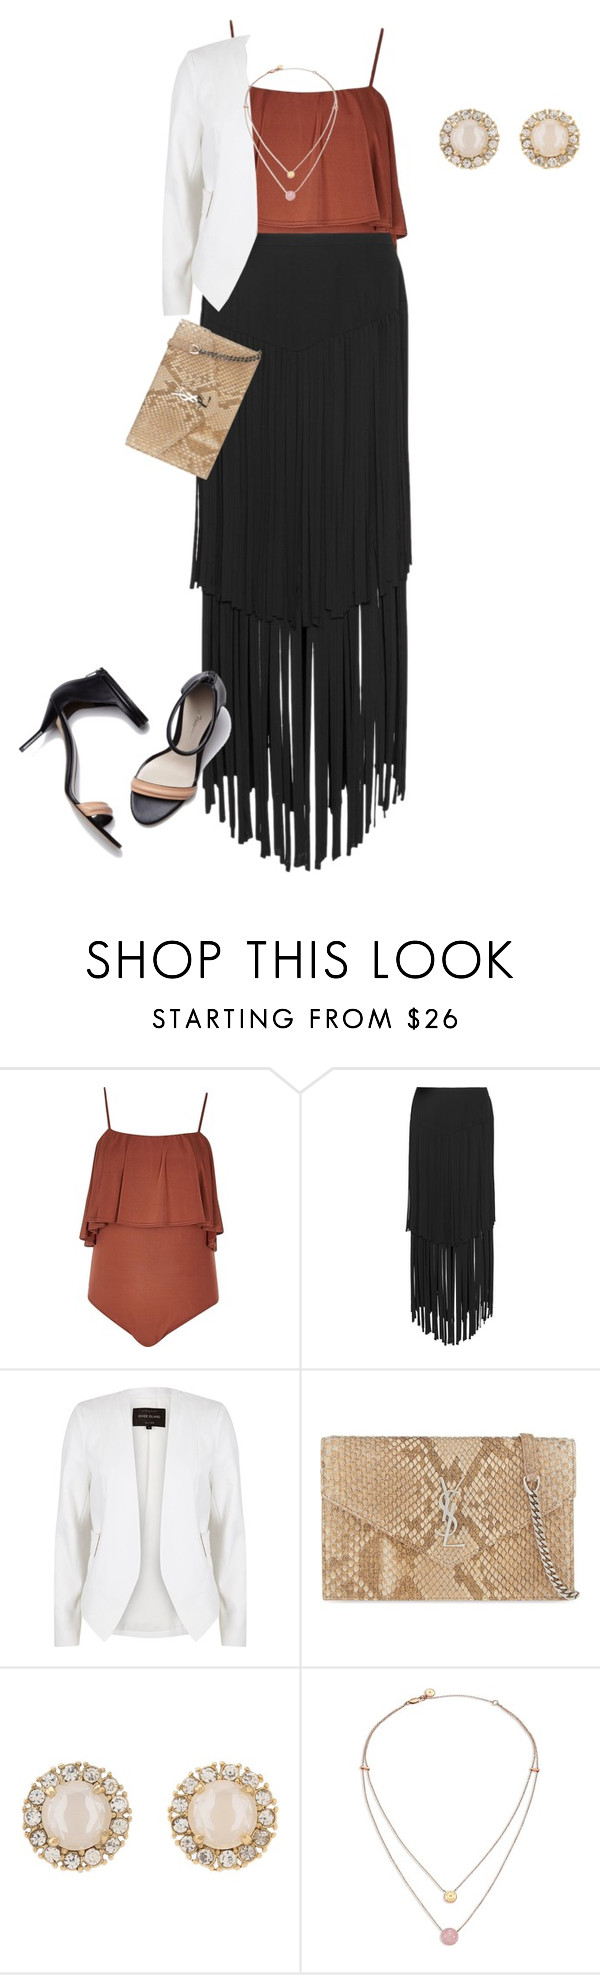 plus size simple summer chic nights by kristie-payne on Polyvore featuring River Island, Mynt 1792, Yves Saint Laurent, Kate Spade, Michael Kors and 3.1 Phillip Lim